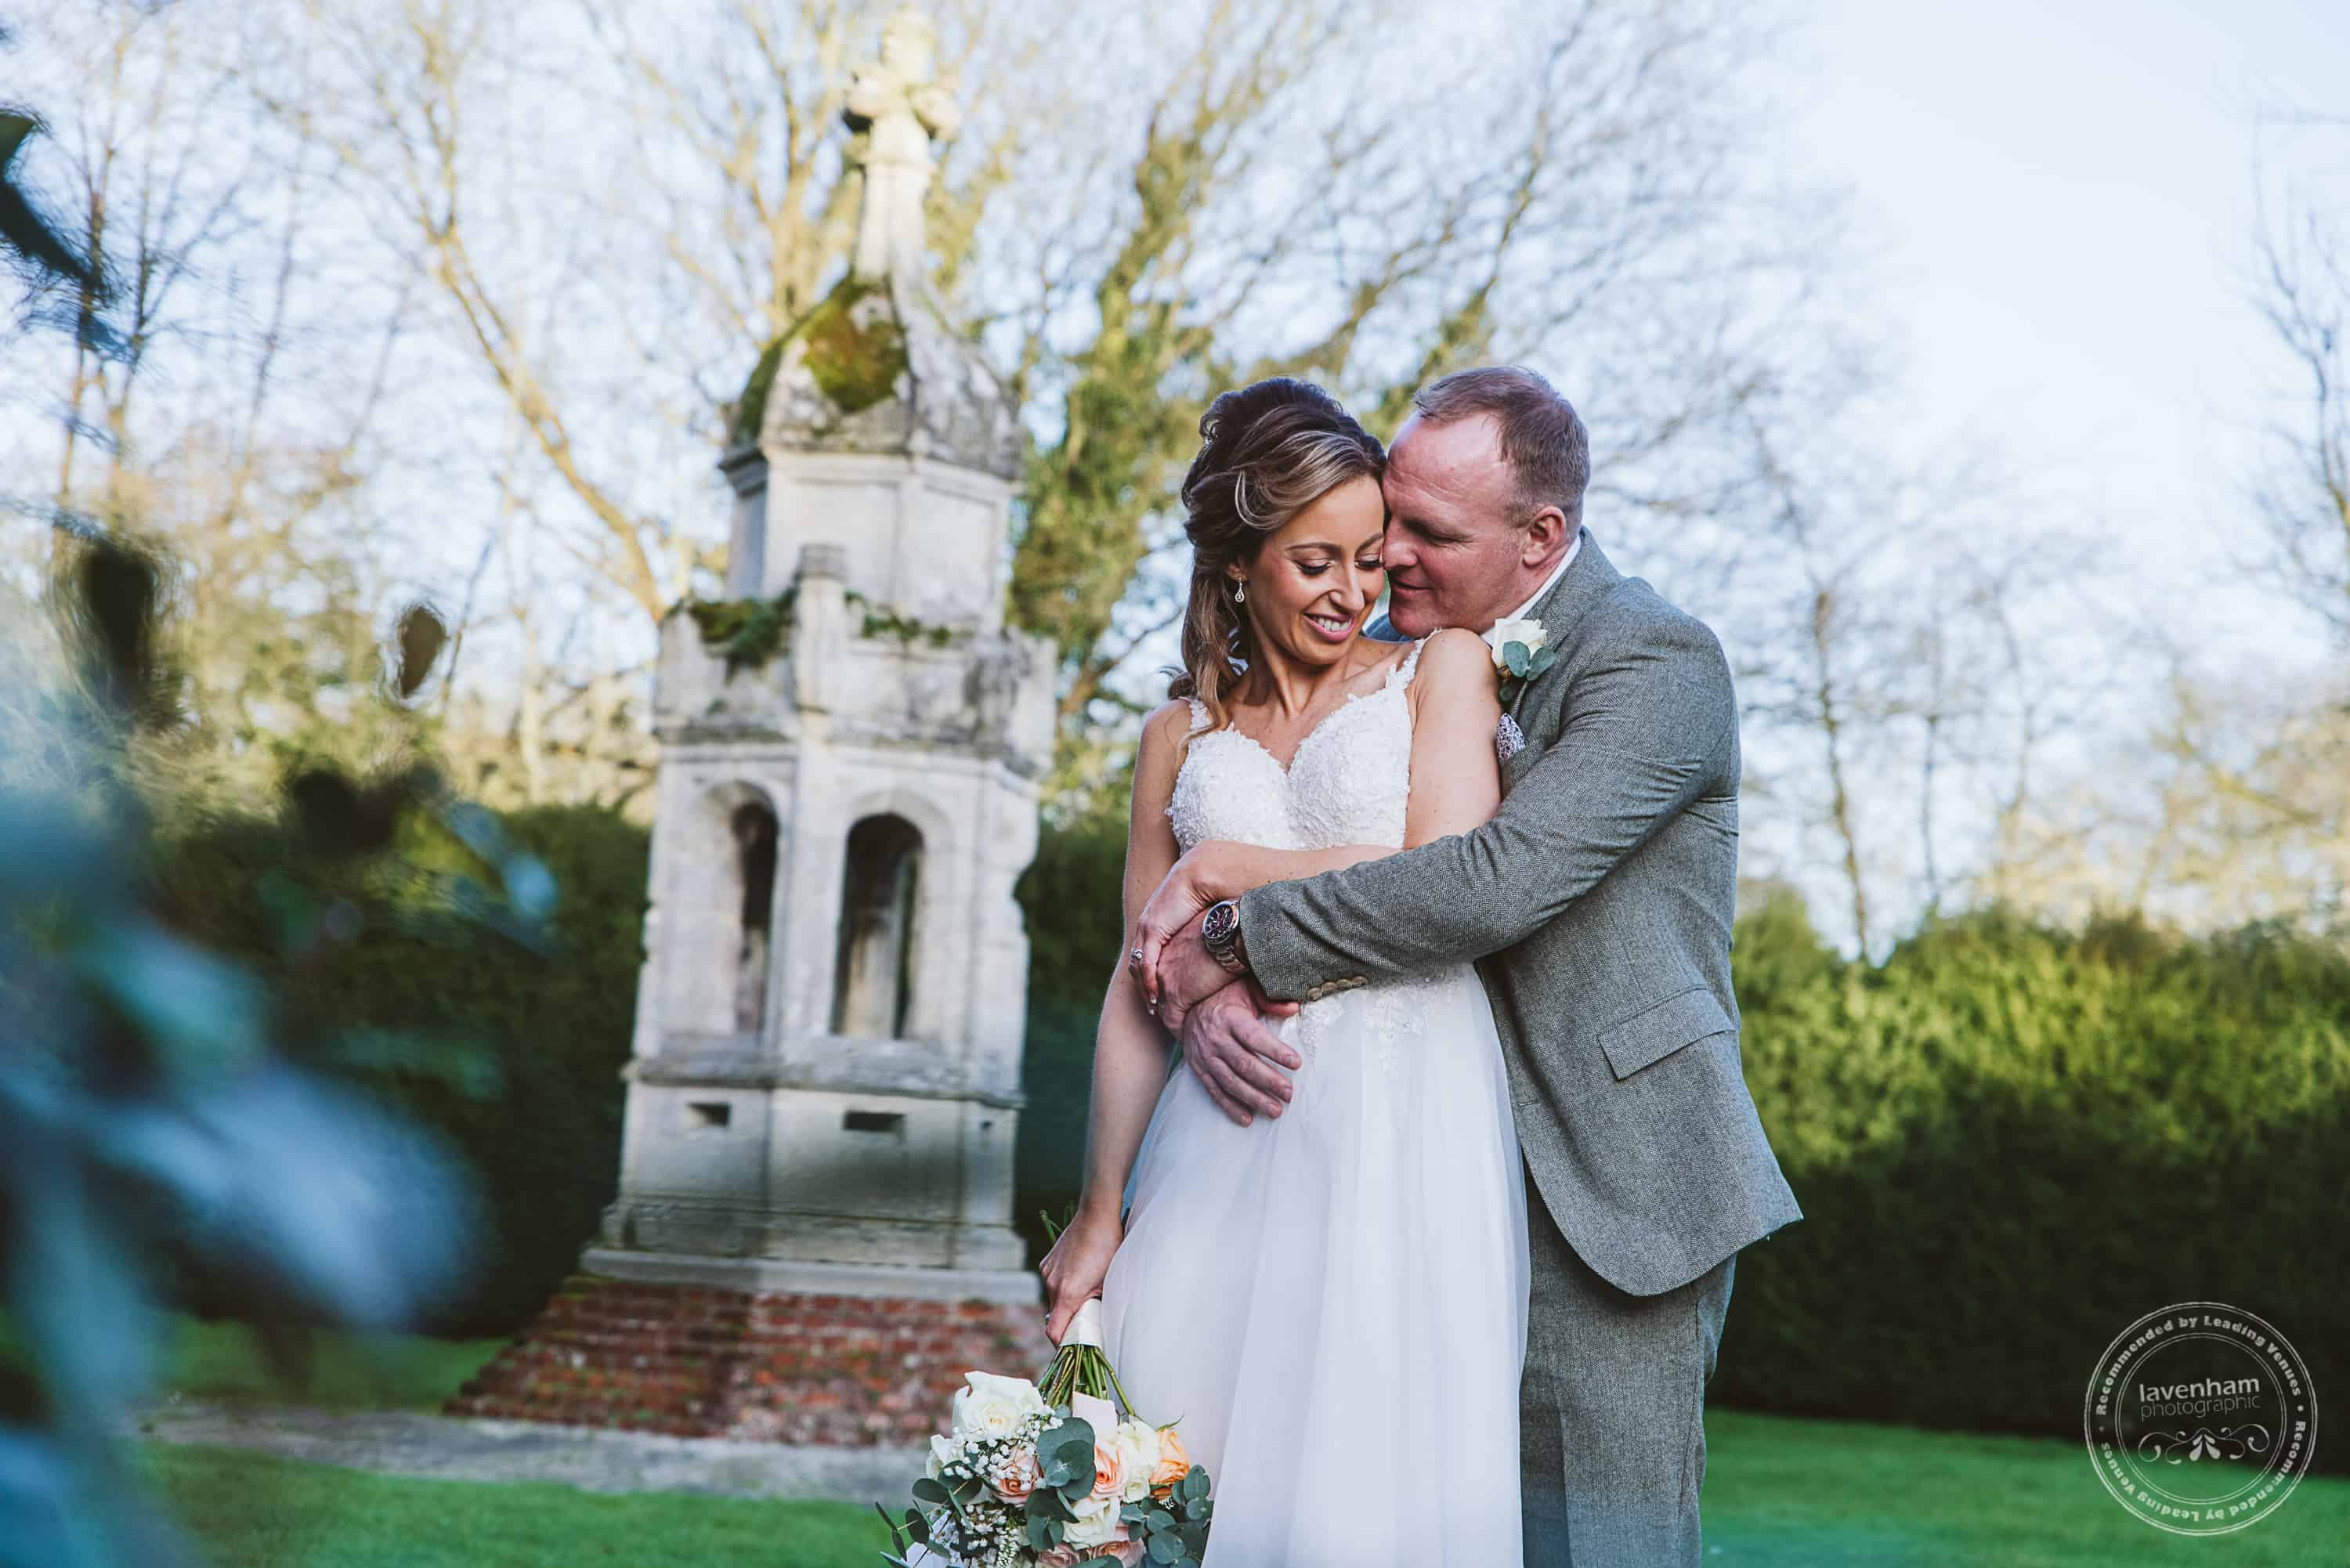 010220 Leez Priory Wedding Photographer 097